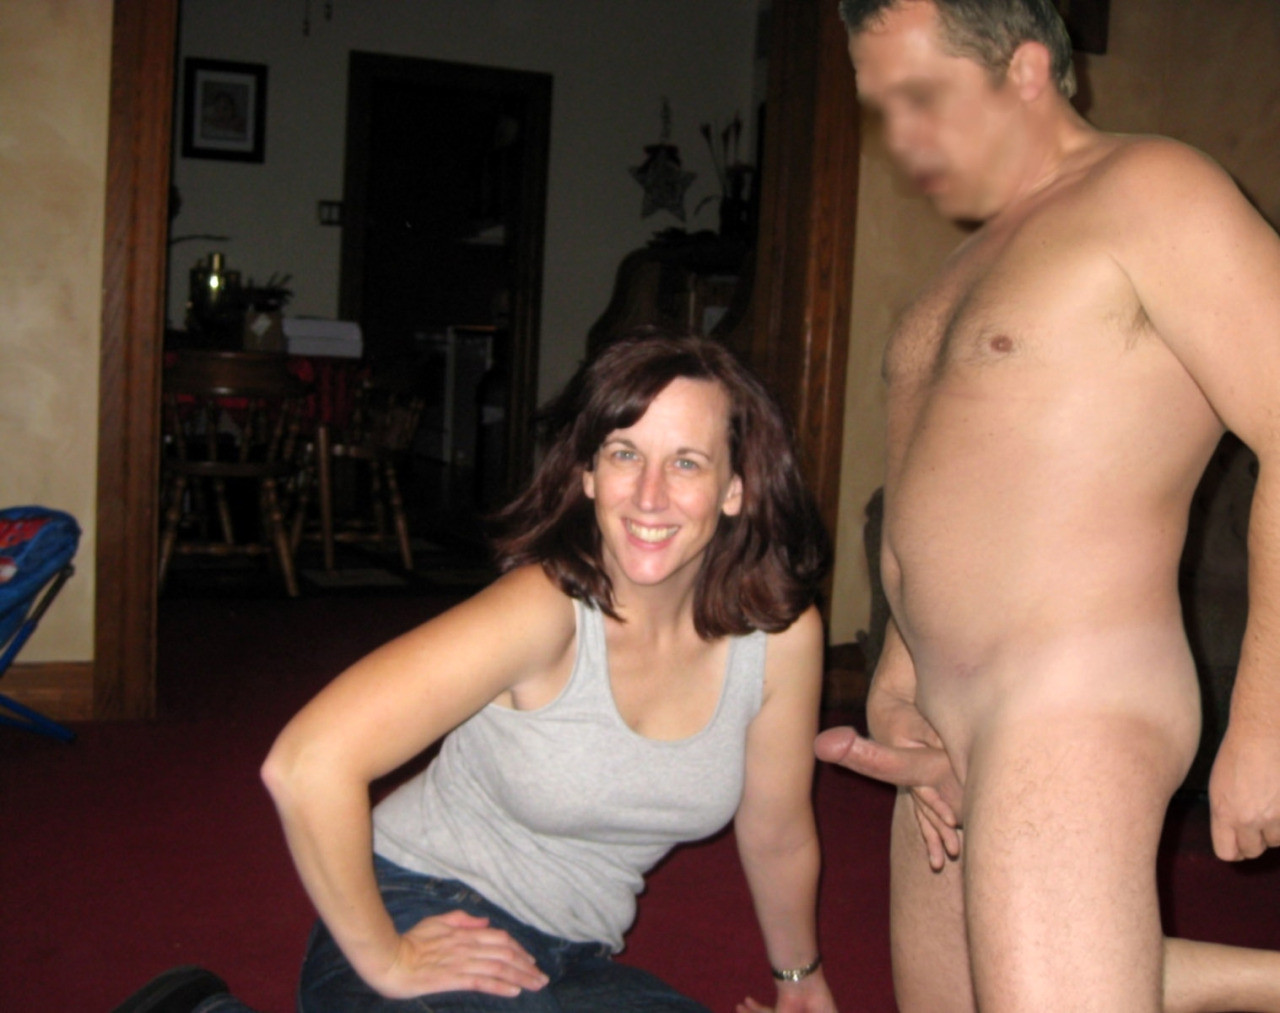 My Cfnm brother sister nude cfnm - other - porn videos